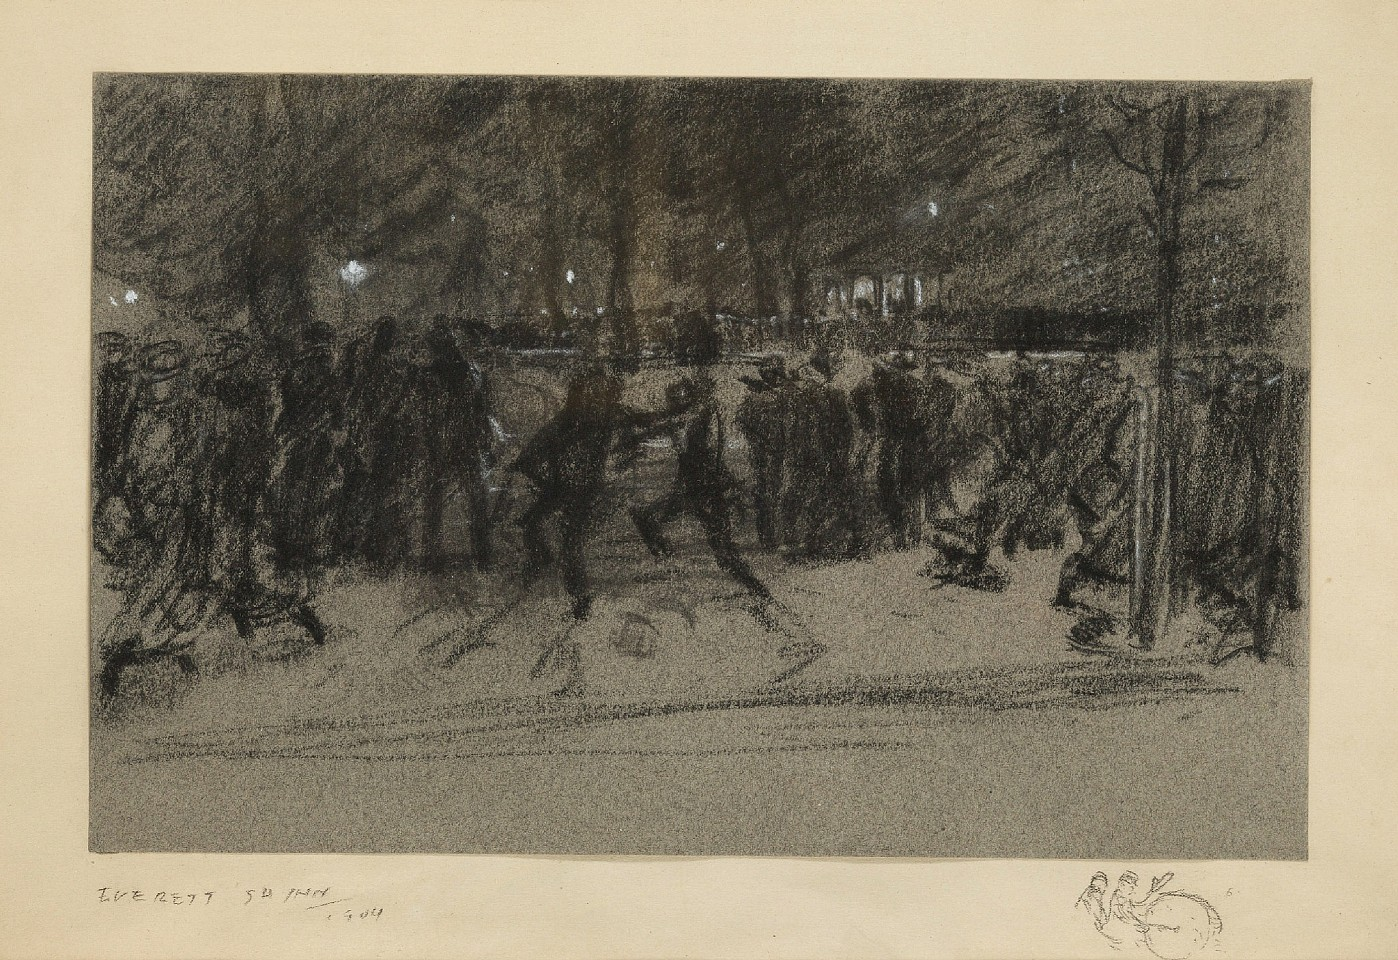 Everett Shinn ,   The Band, Washington Square  ,  1904     Charcoal & chinese white on gray paper- mounted on paper ,  8 1/2 x 13 1/4 in. (21.6 x 33.7 cm)     ES190401